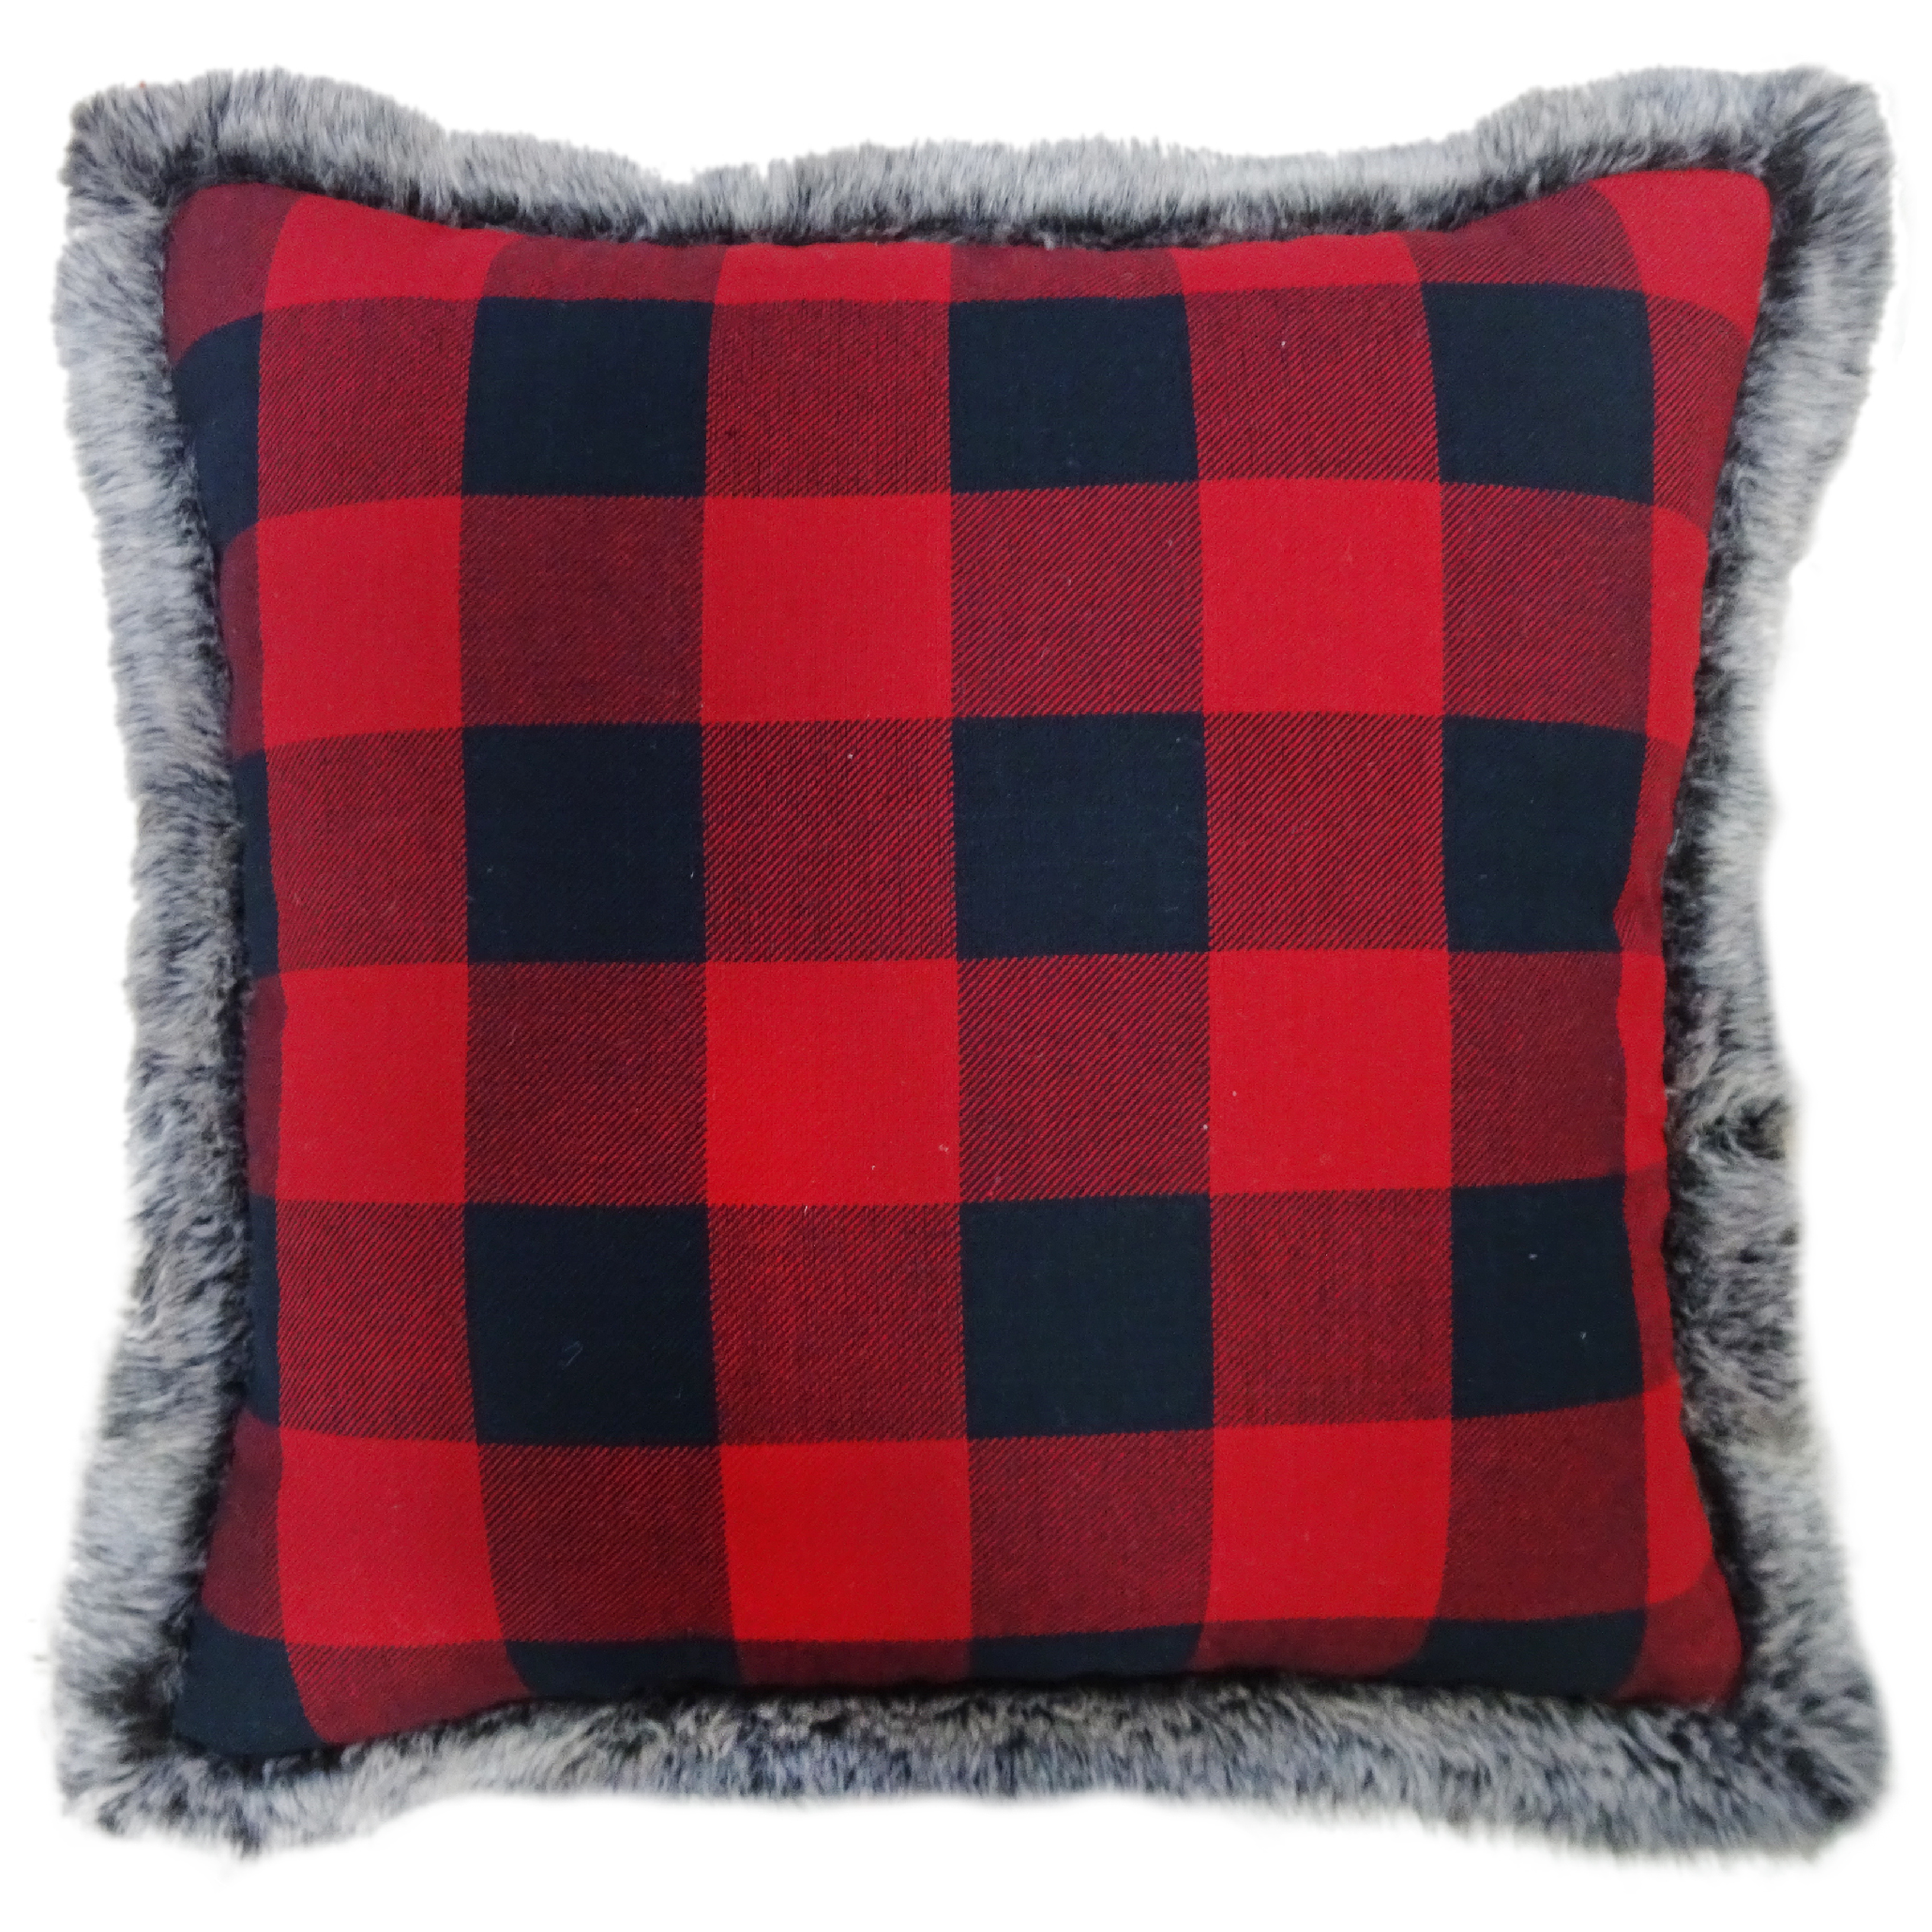 buffalo leather chair wrought iron kitchen chairs plaid decorative pillow - home decor pillows, throws & slipcovers ...